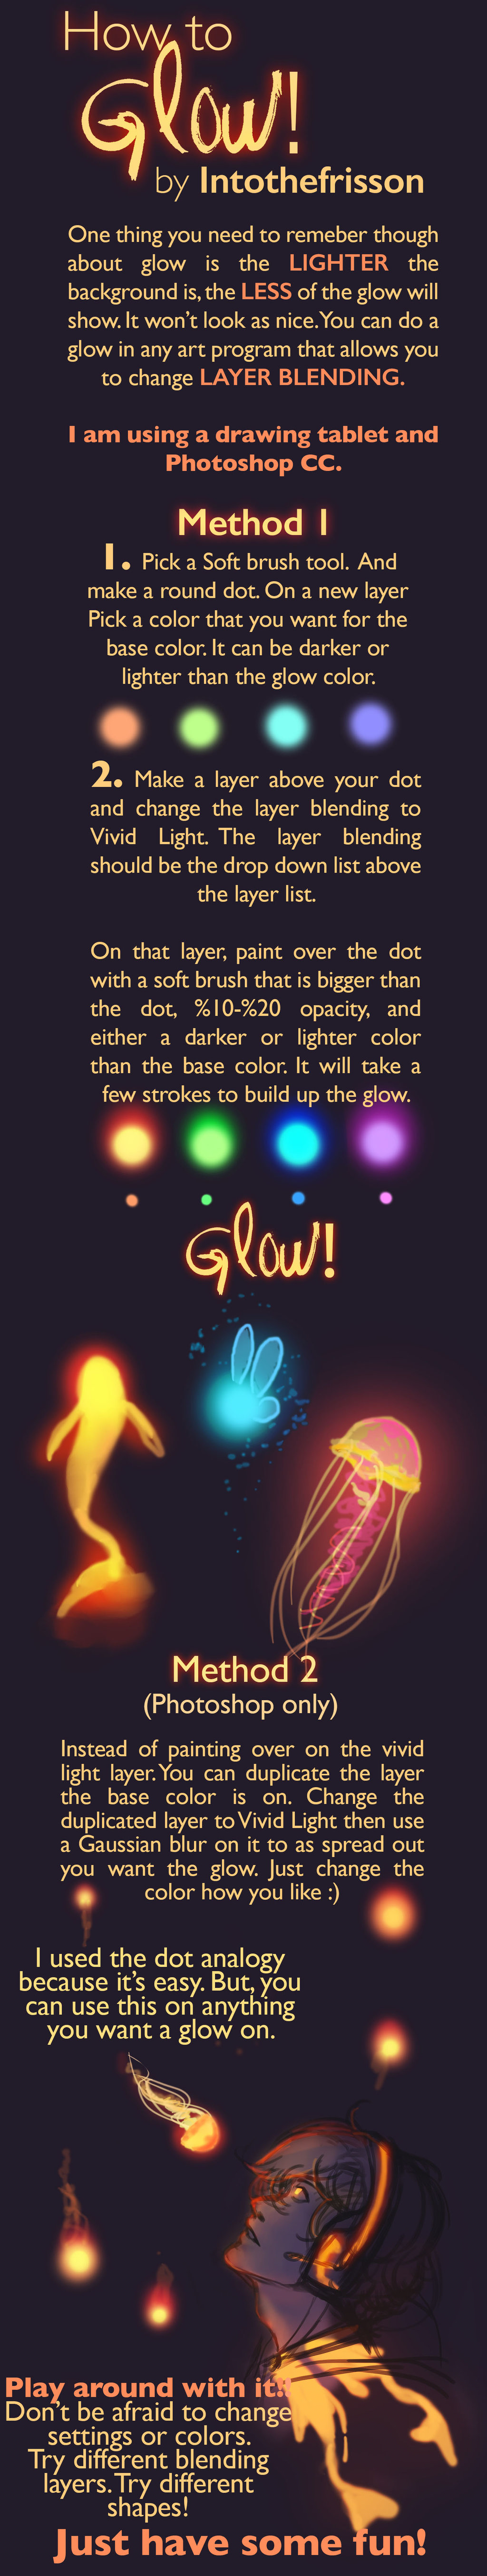 1024x5421 How To Glow! Tutorial Glowing By Intothefrisson